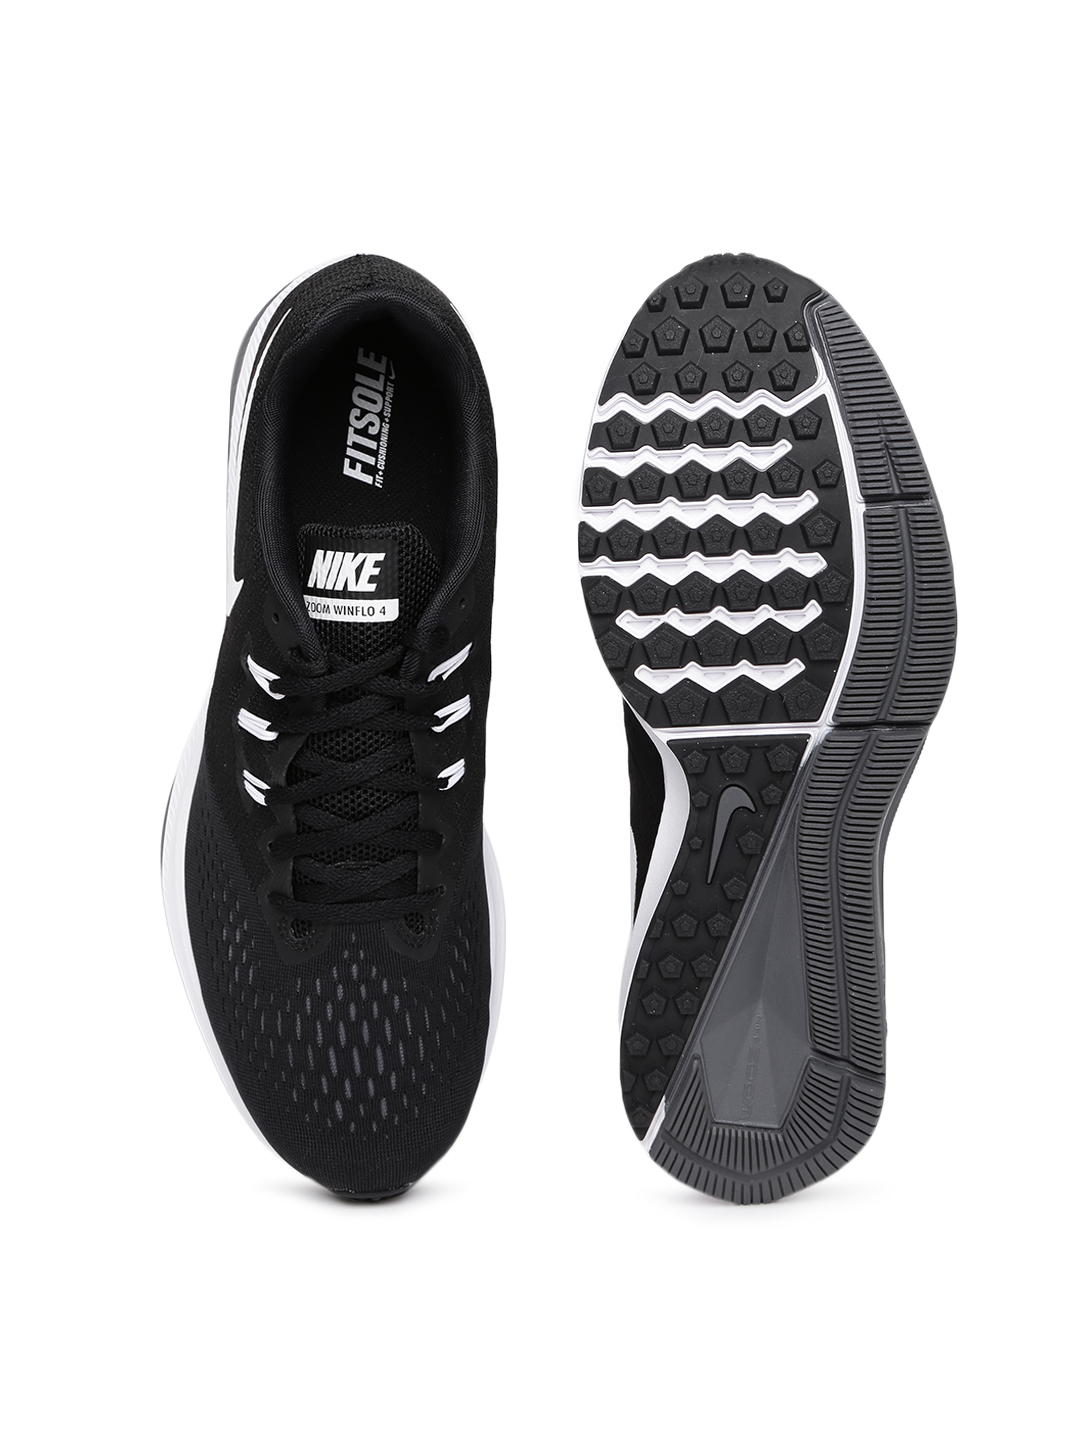 af681f912850 NIKE Men Black Zoom Winflo 4 Running Shoes Price in India